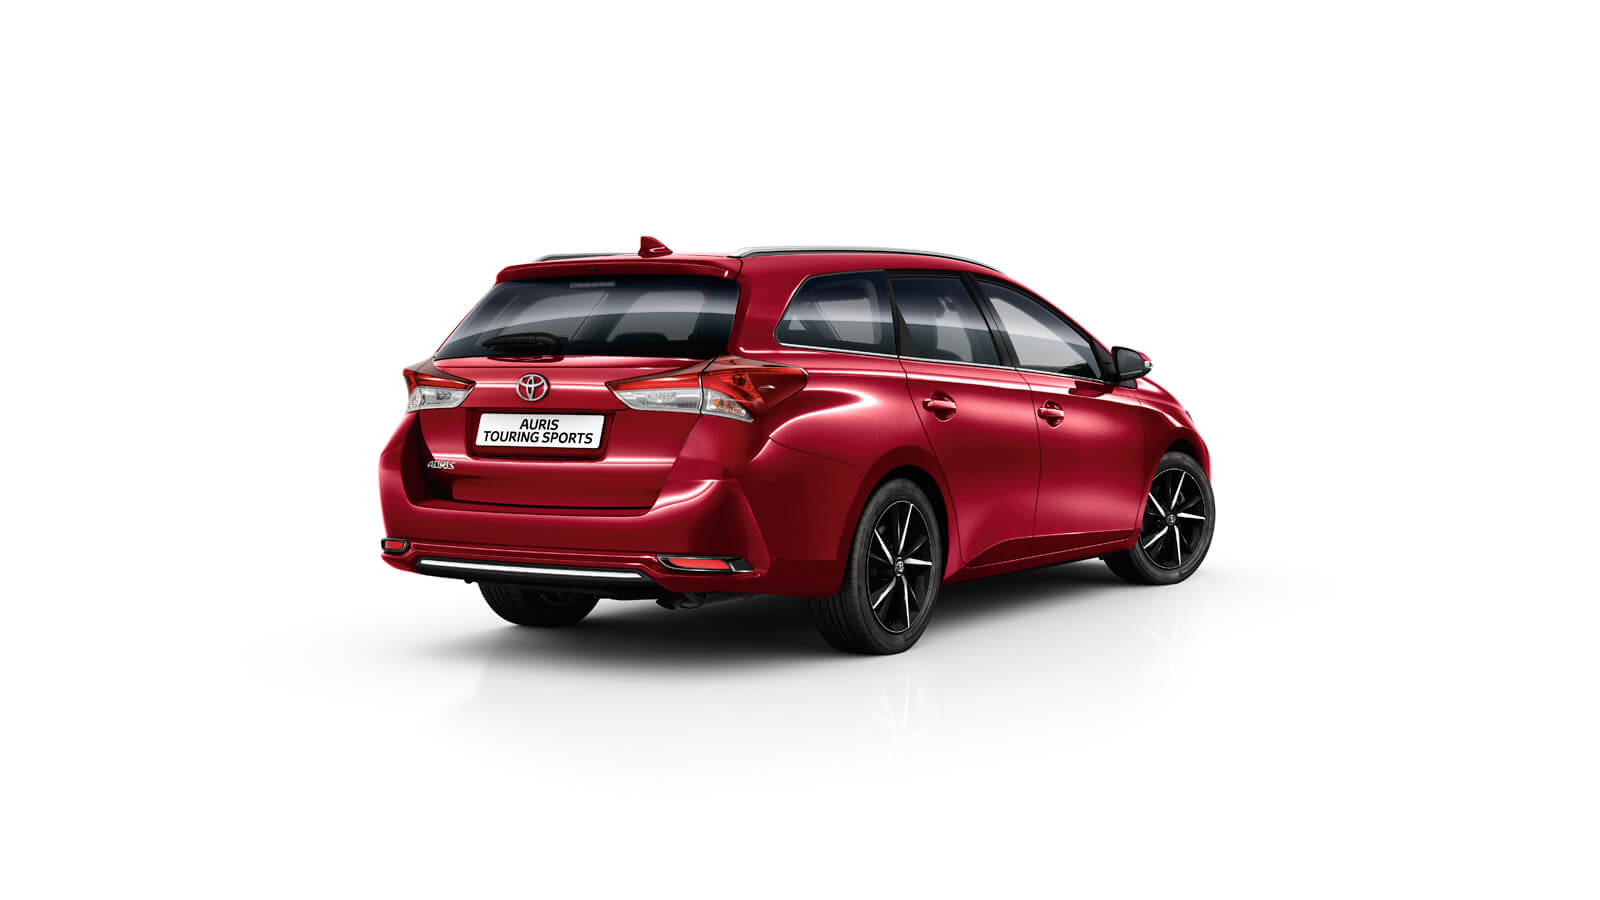 auris touring sports models features howards toyota. Black Bedroom Furniture Sets. Home Design Ideas